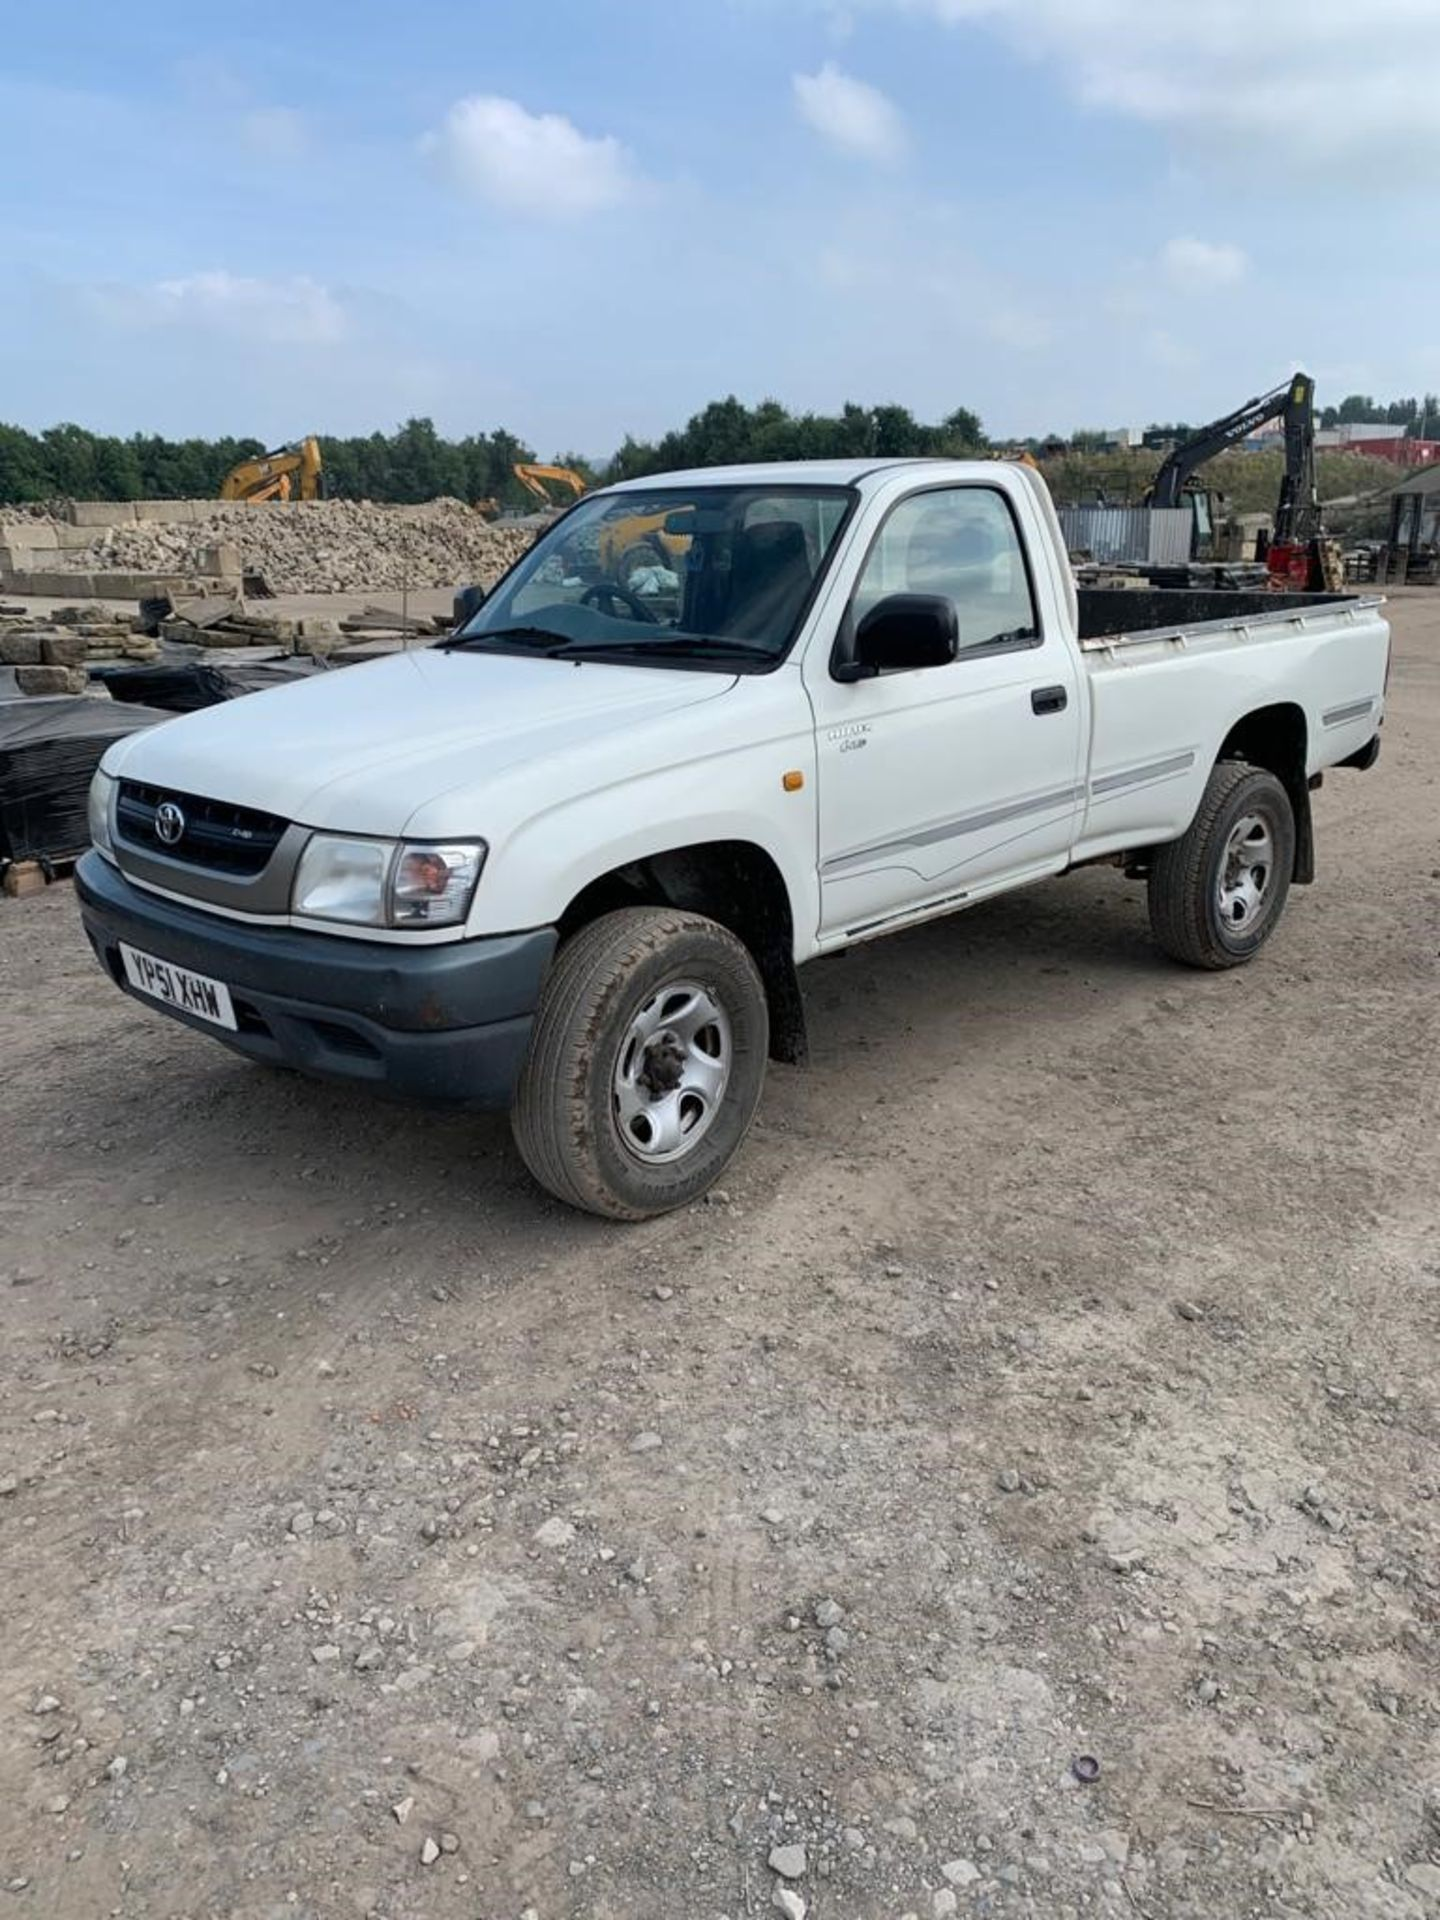 ToyotaHilux 2.5 2504WD MWB Diesel Pickup Truck, registration no.YP51 XHW, date first registered - Image 2 of 6